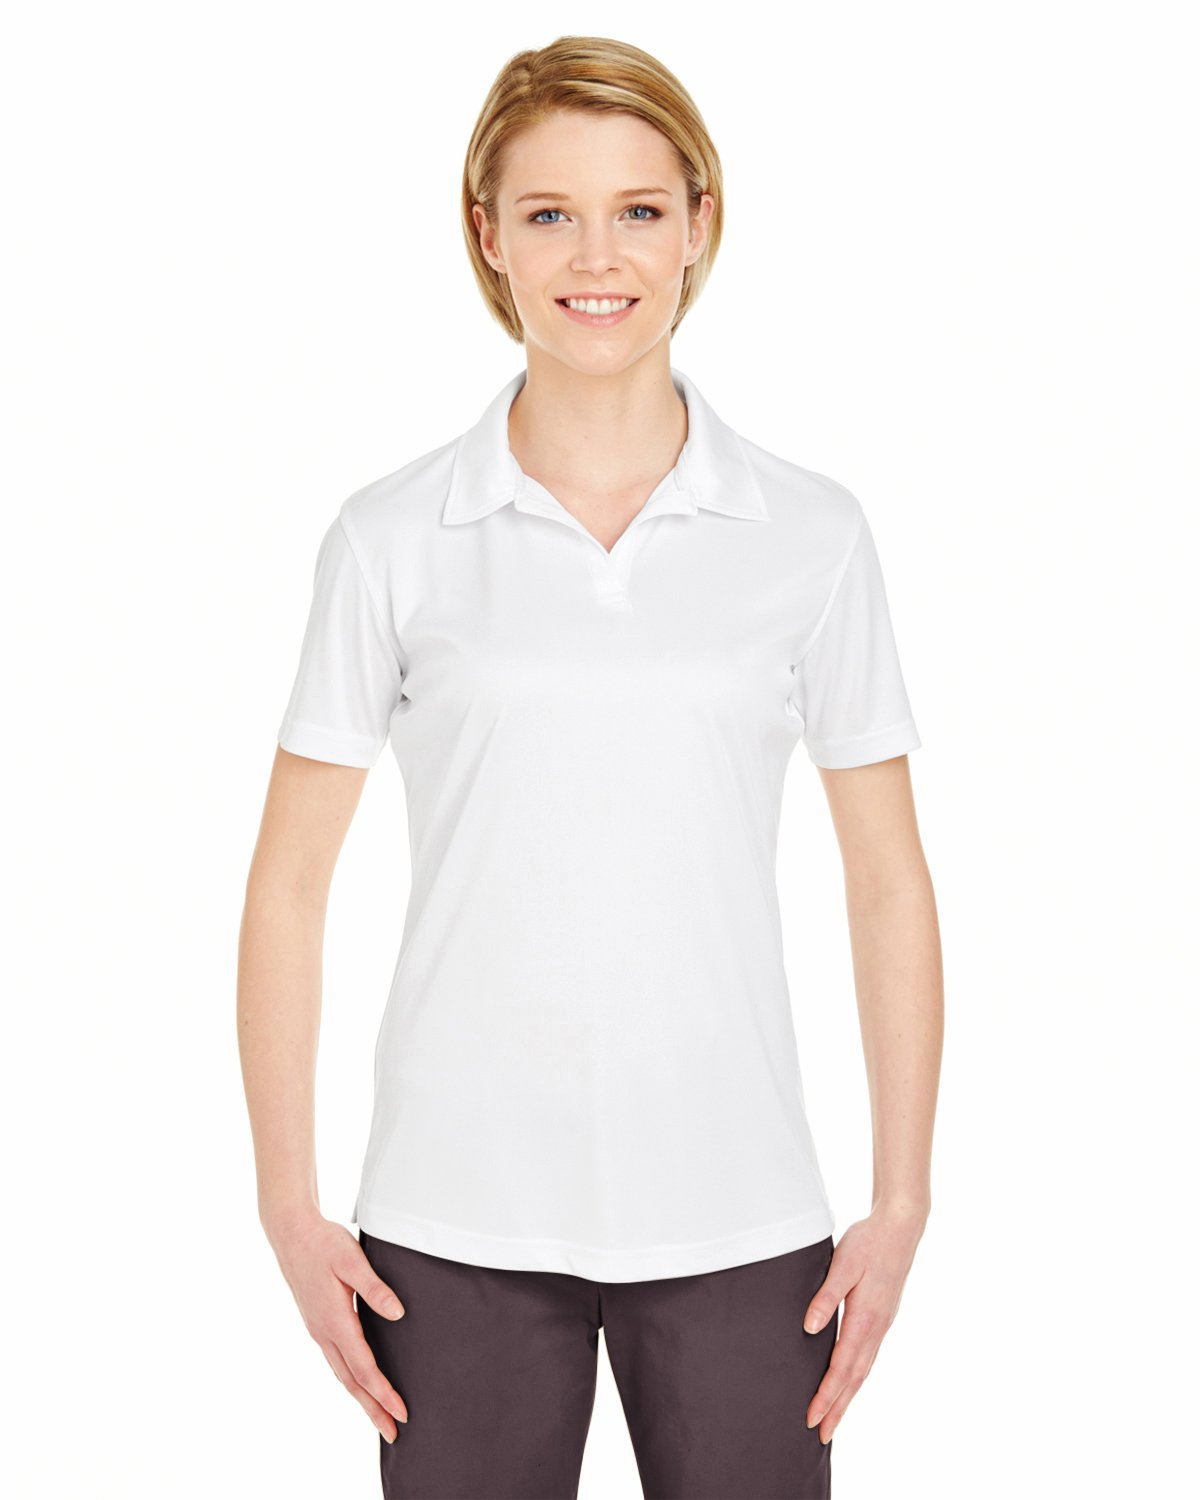 UltraClub Women's Cool & Dry Sport Interlock Polo Shirt Pack of 10, White, Small by UltraClub